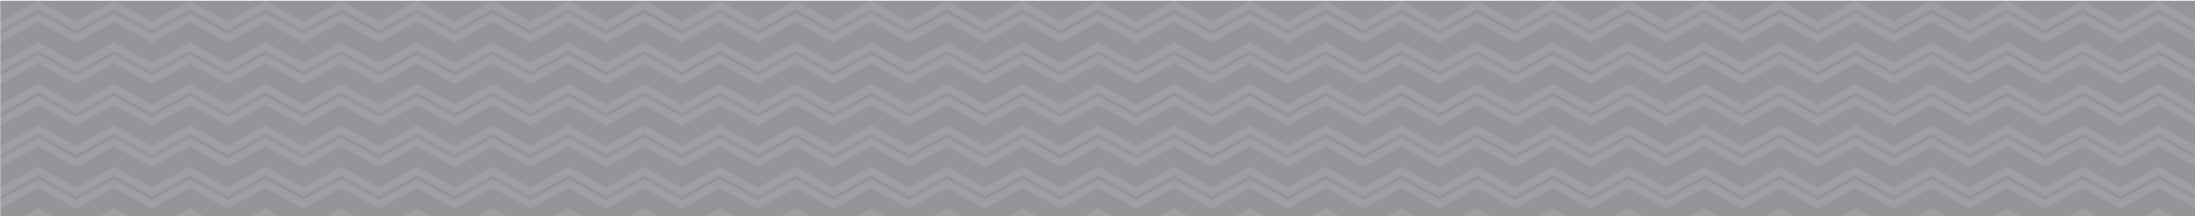 Pattern_Background_Gray.png